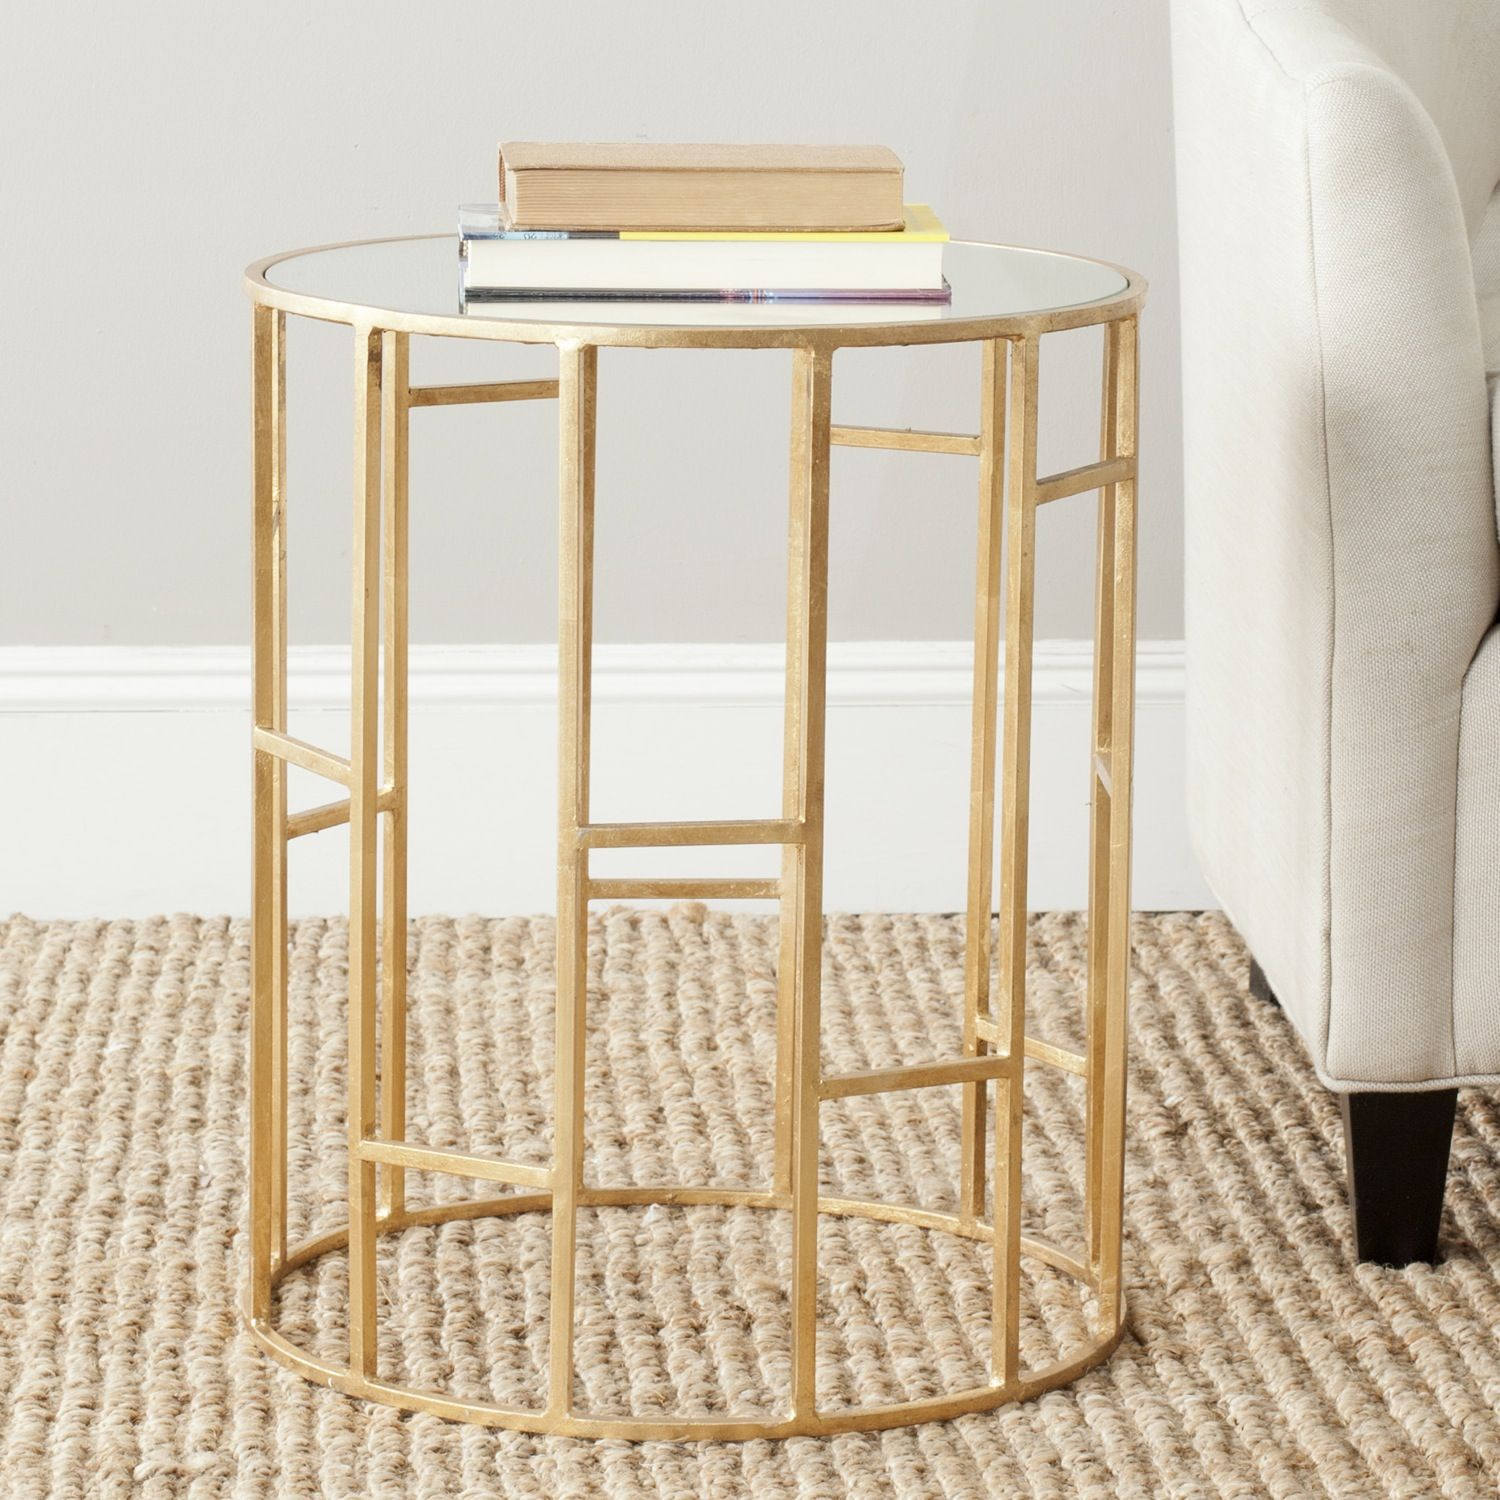 safavieh treasures doreen gold mirror top accent table tables with matching mirrors condos wood end storage pier kirklands lamps kitchen counter retro modern chairs dressing